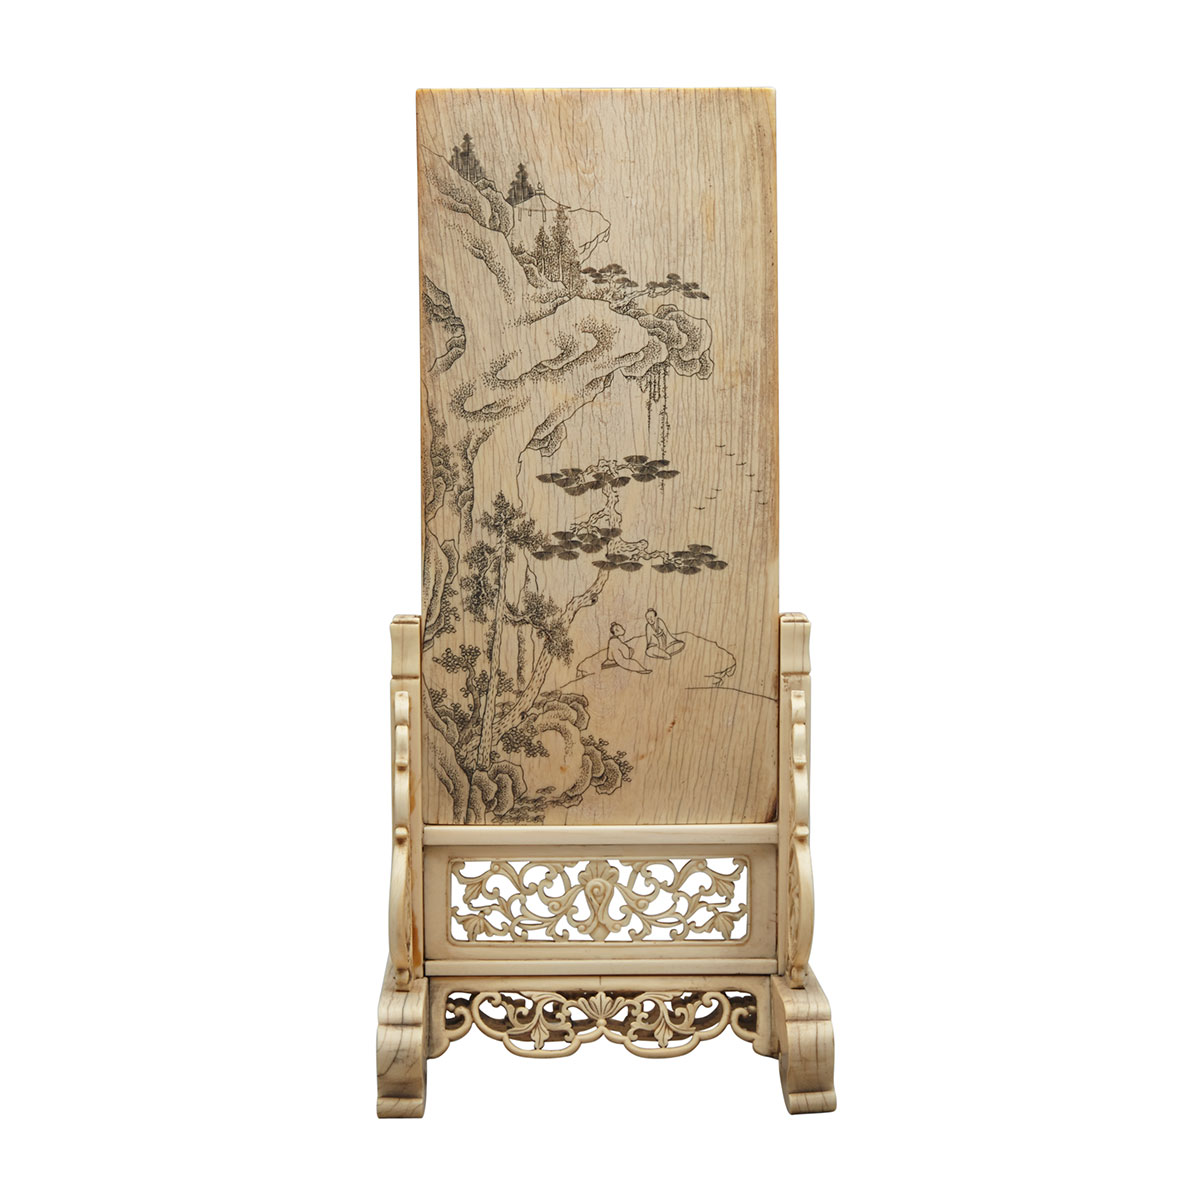 Ivory Screen and Stand, 19th Century